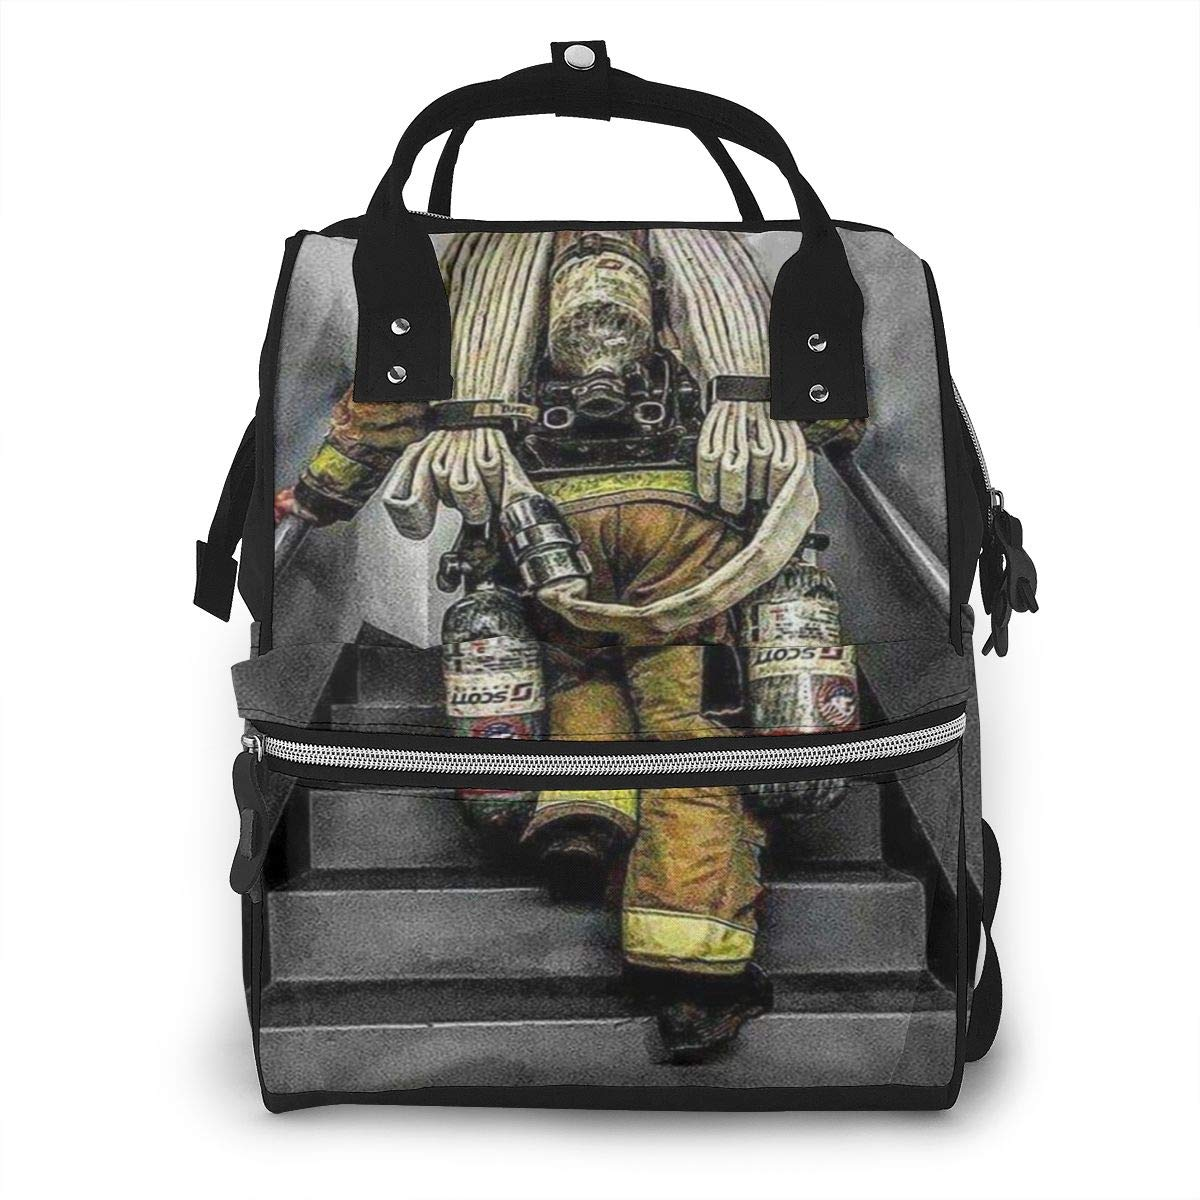 Firefighter Firefighting Diaper Bag Backpack Waterproof Multi-Function Baby Changing Bags Maternity Nappy Bags Durable Large Capacity for Mom Dad Travel Baby Care